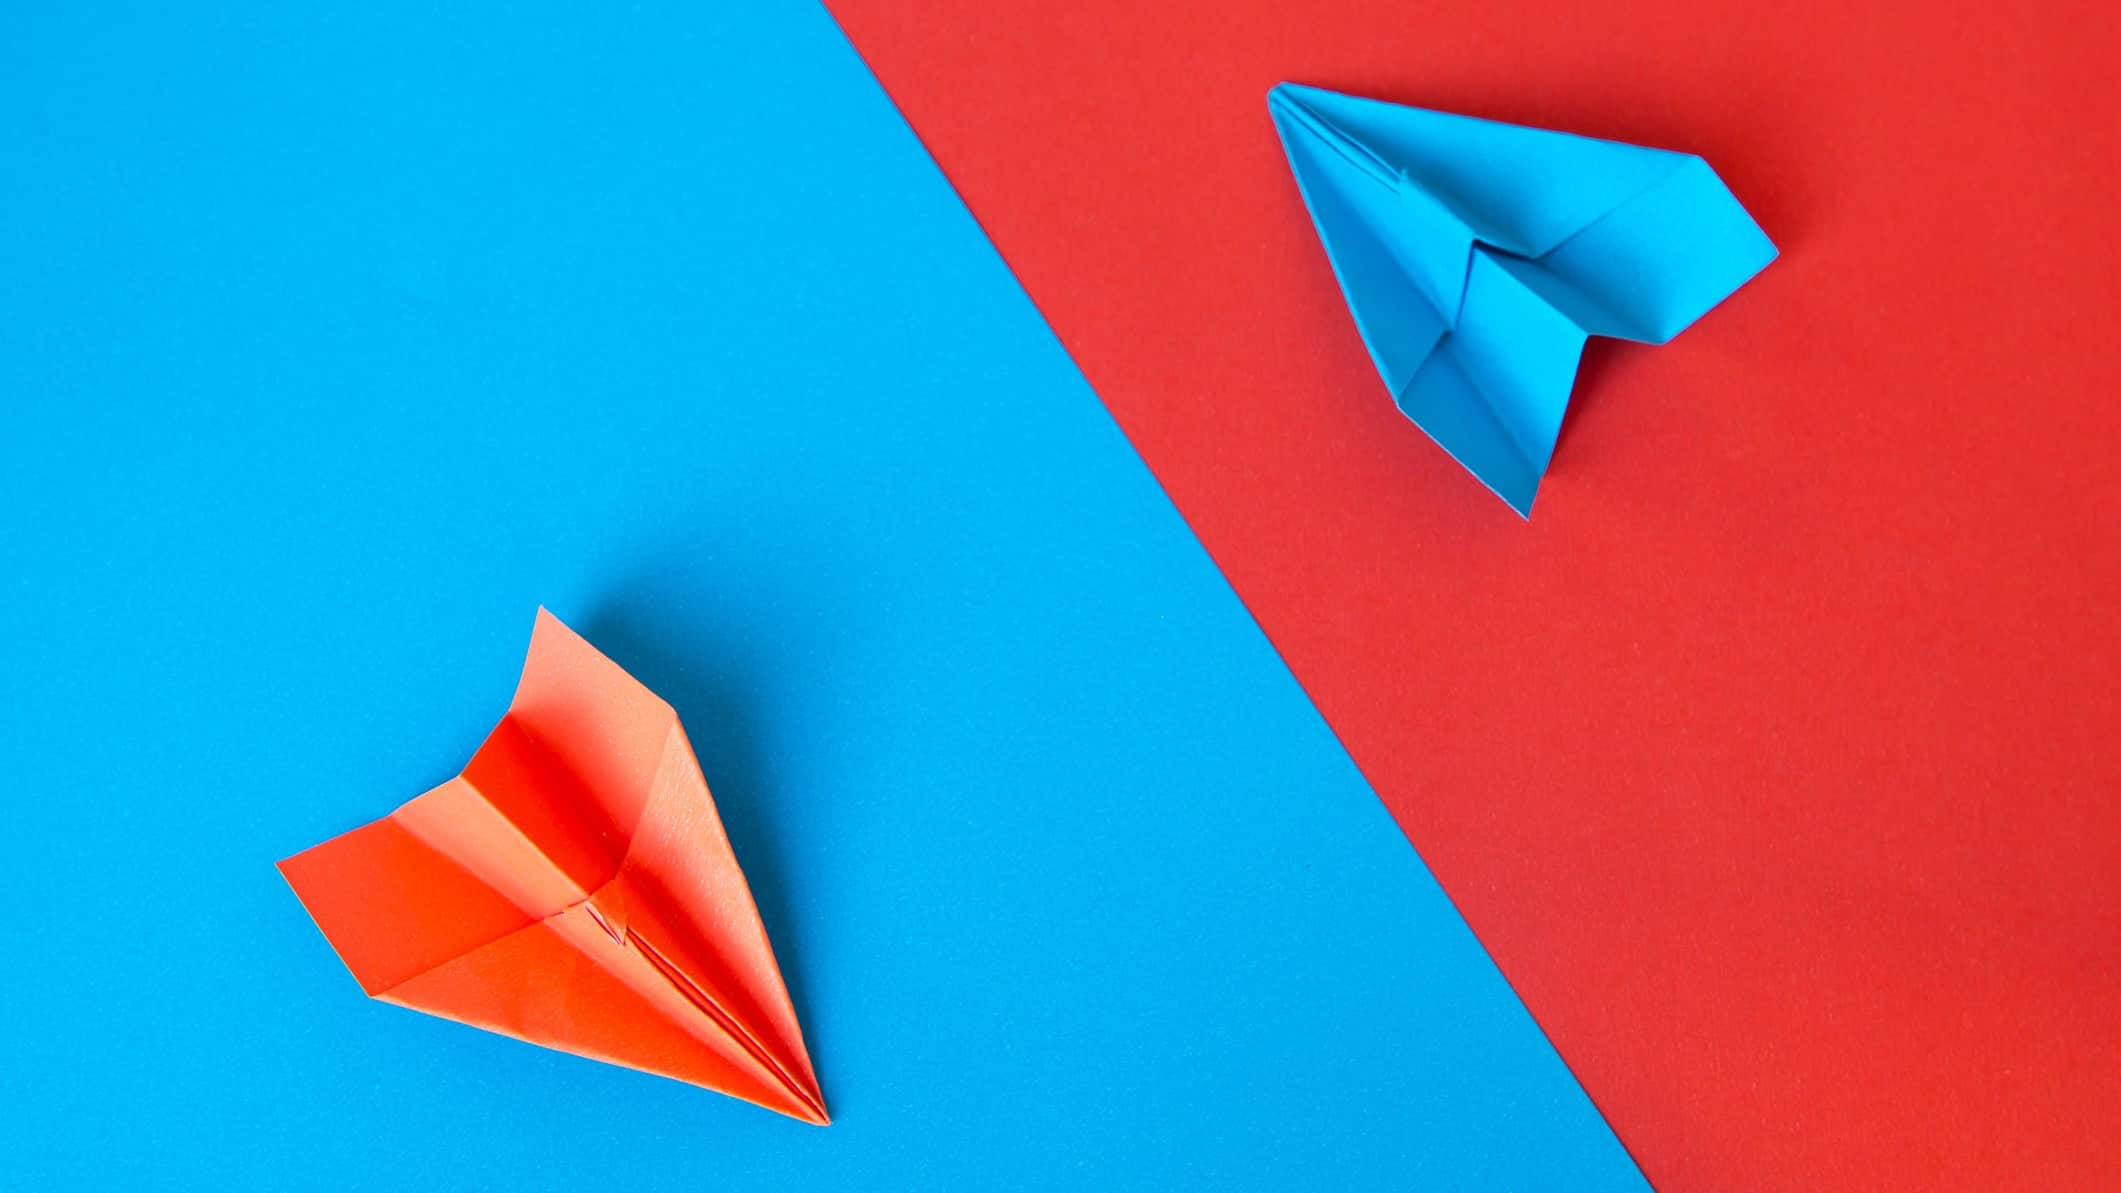 Red and blue paper planes